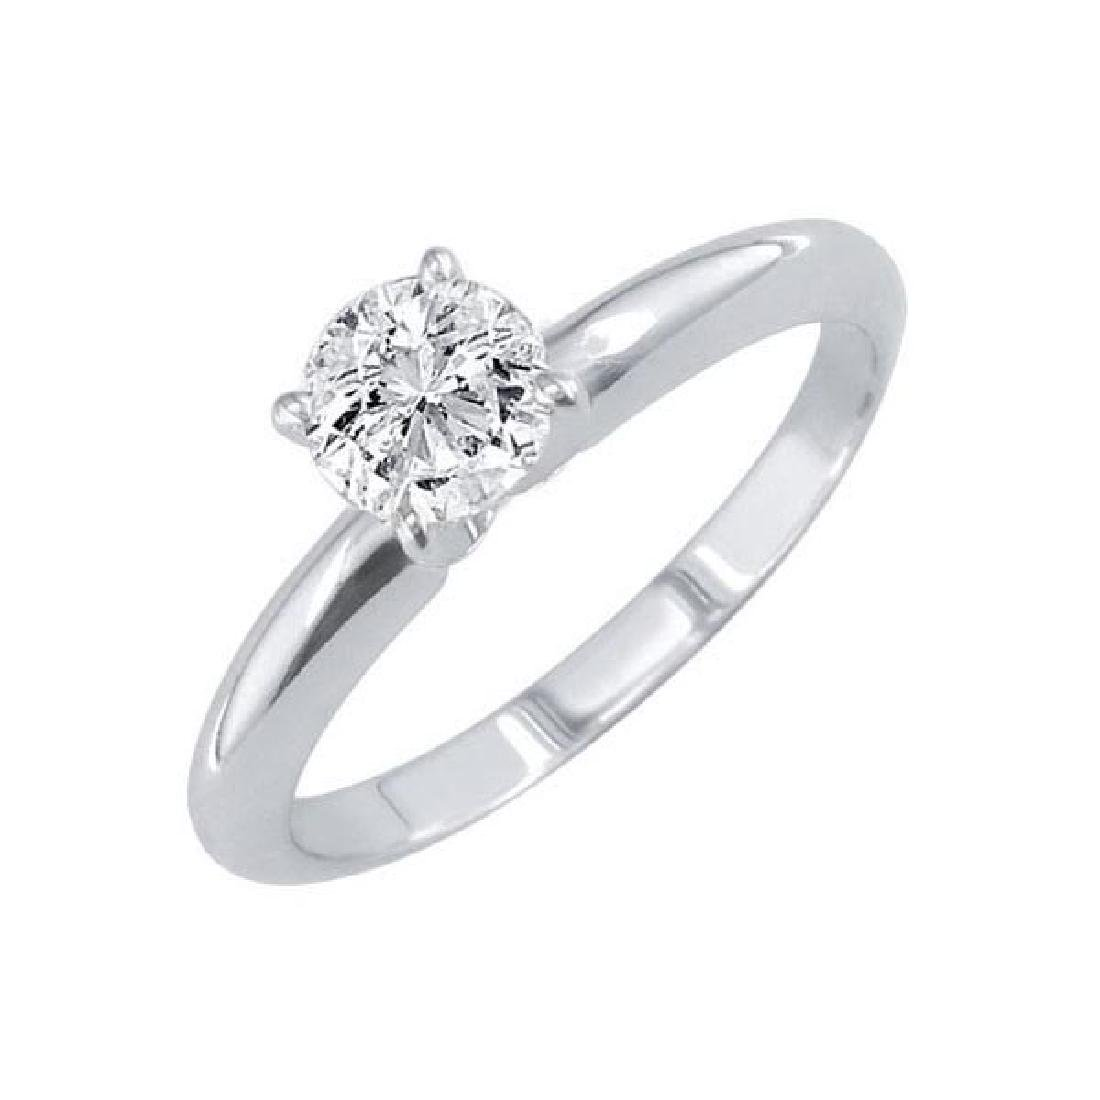 Certified 0.46 CTW Round Diamond Solitaire 14k Ring E/S